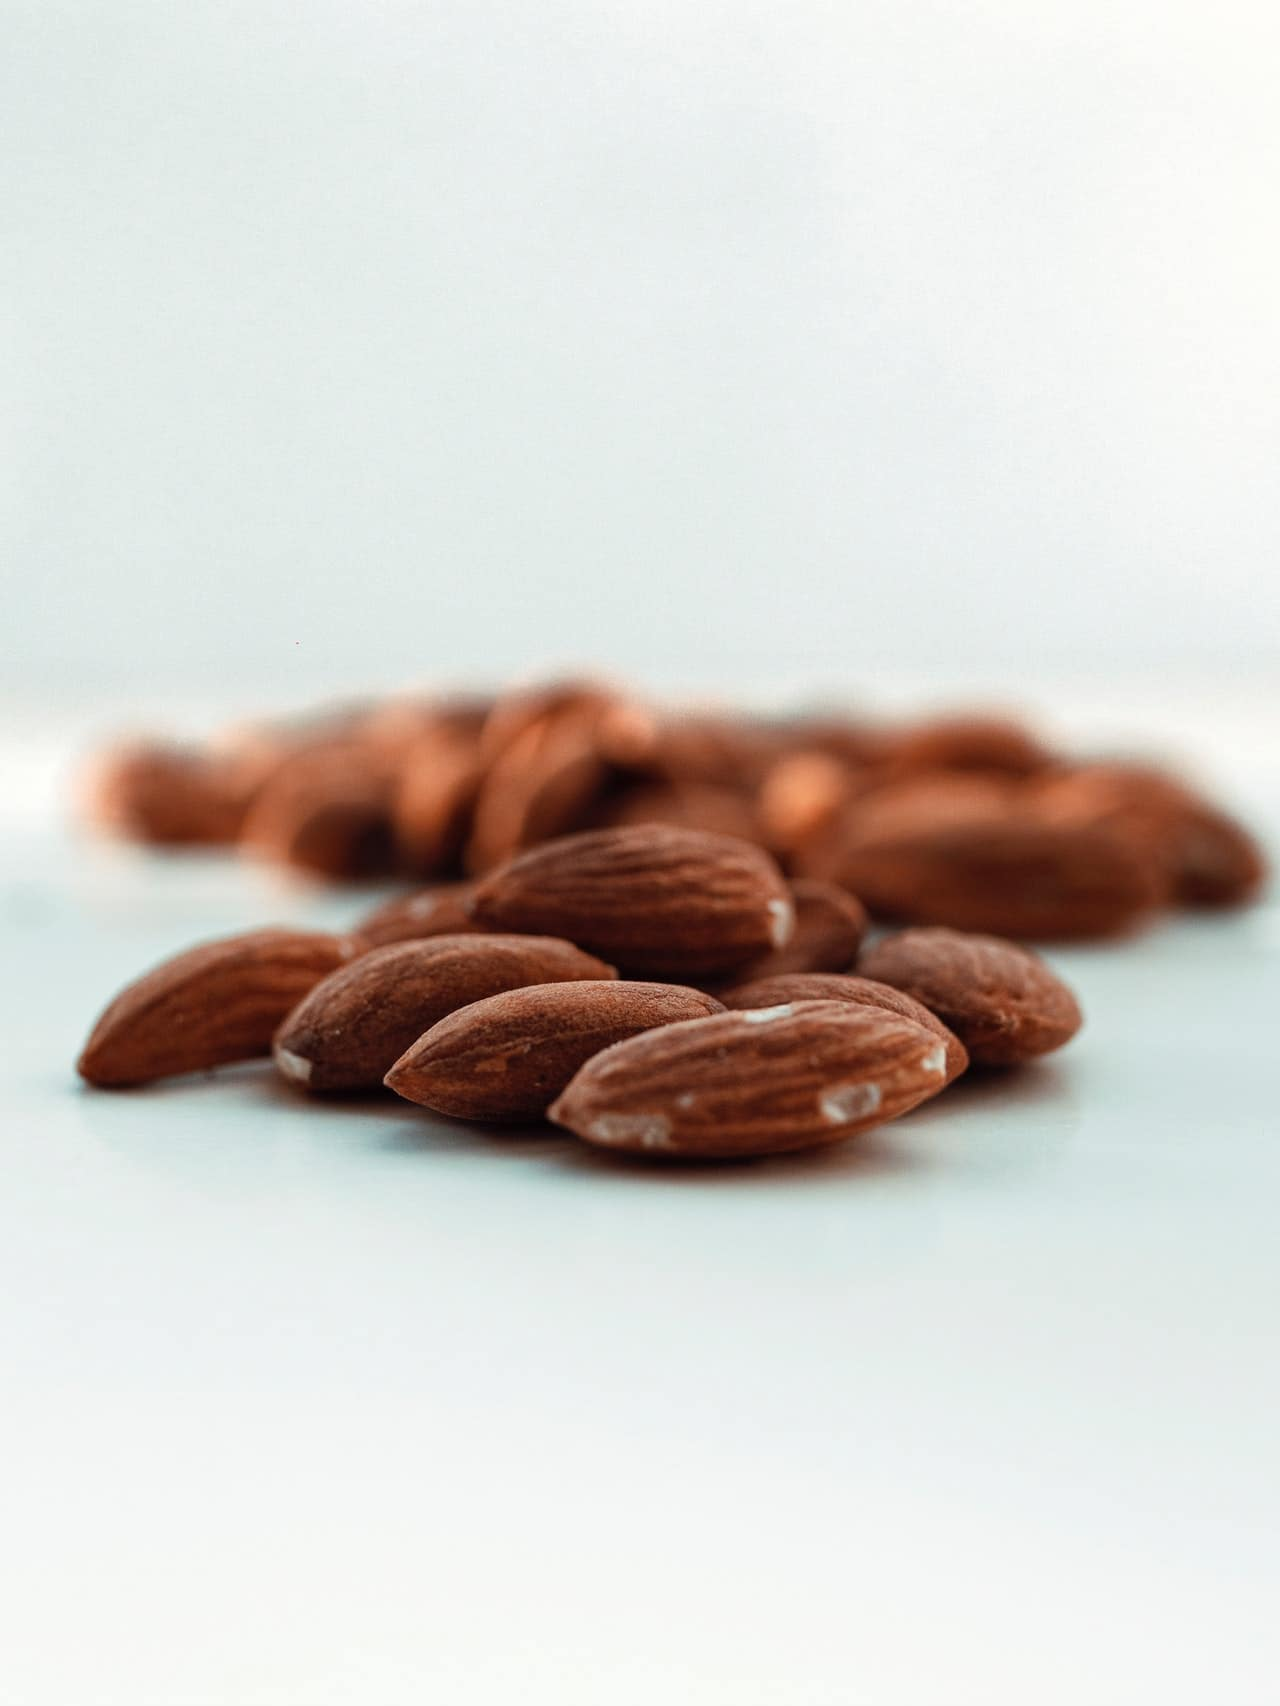 almonds-on-white-surface-3939170